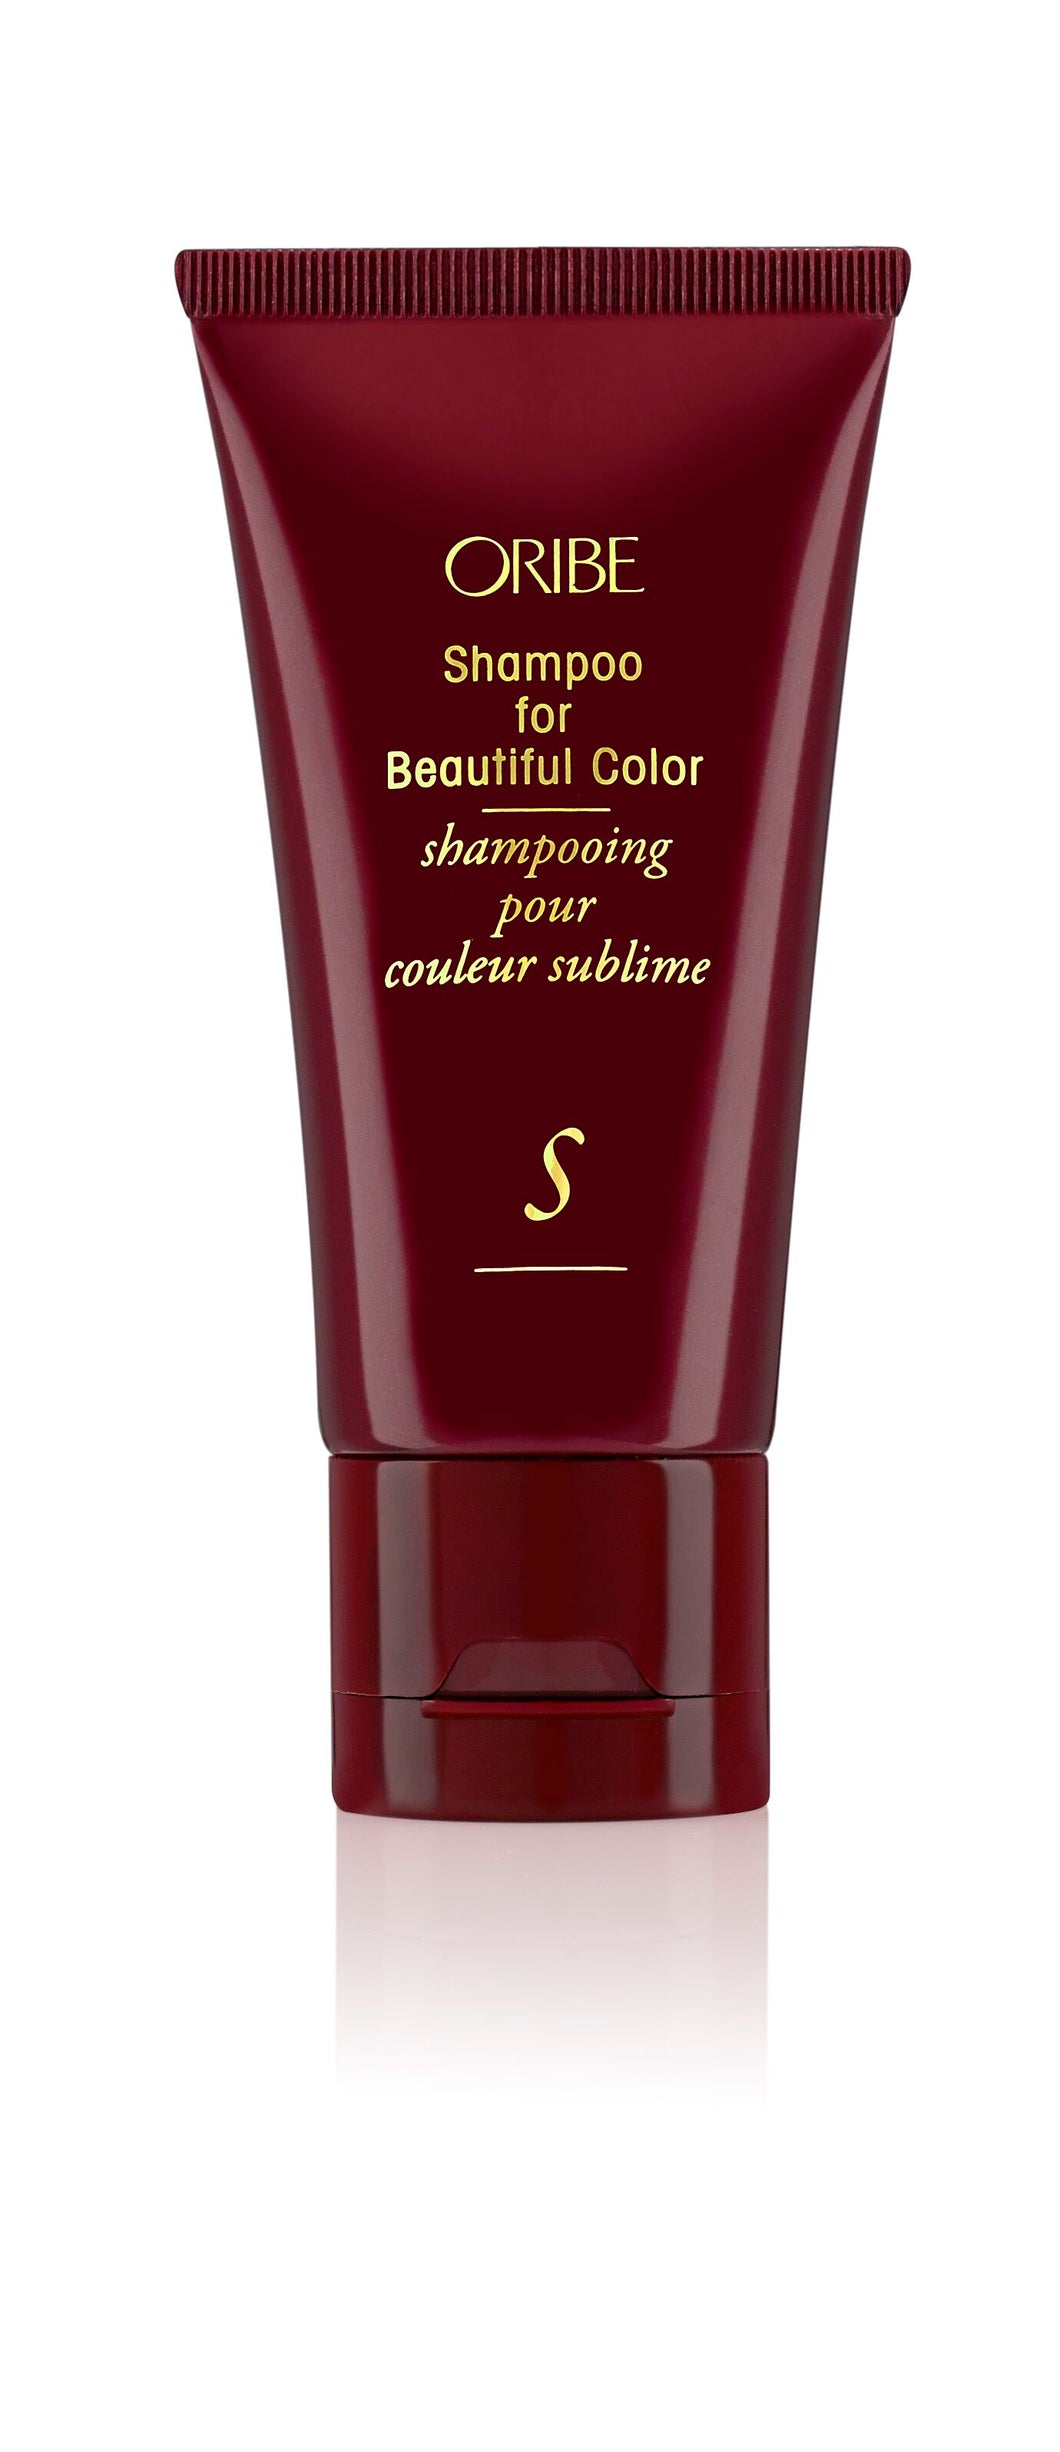 Shampoo for Beautiful Color, Travel 1.7 OZ.